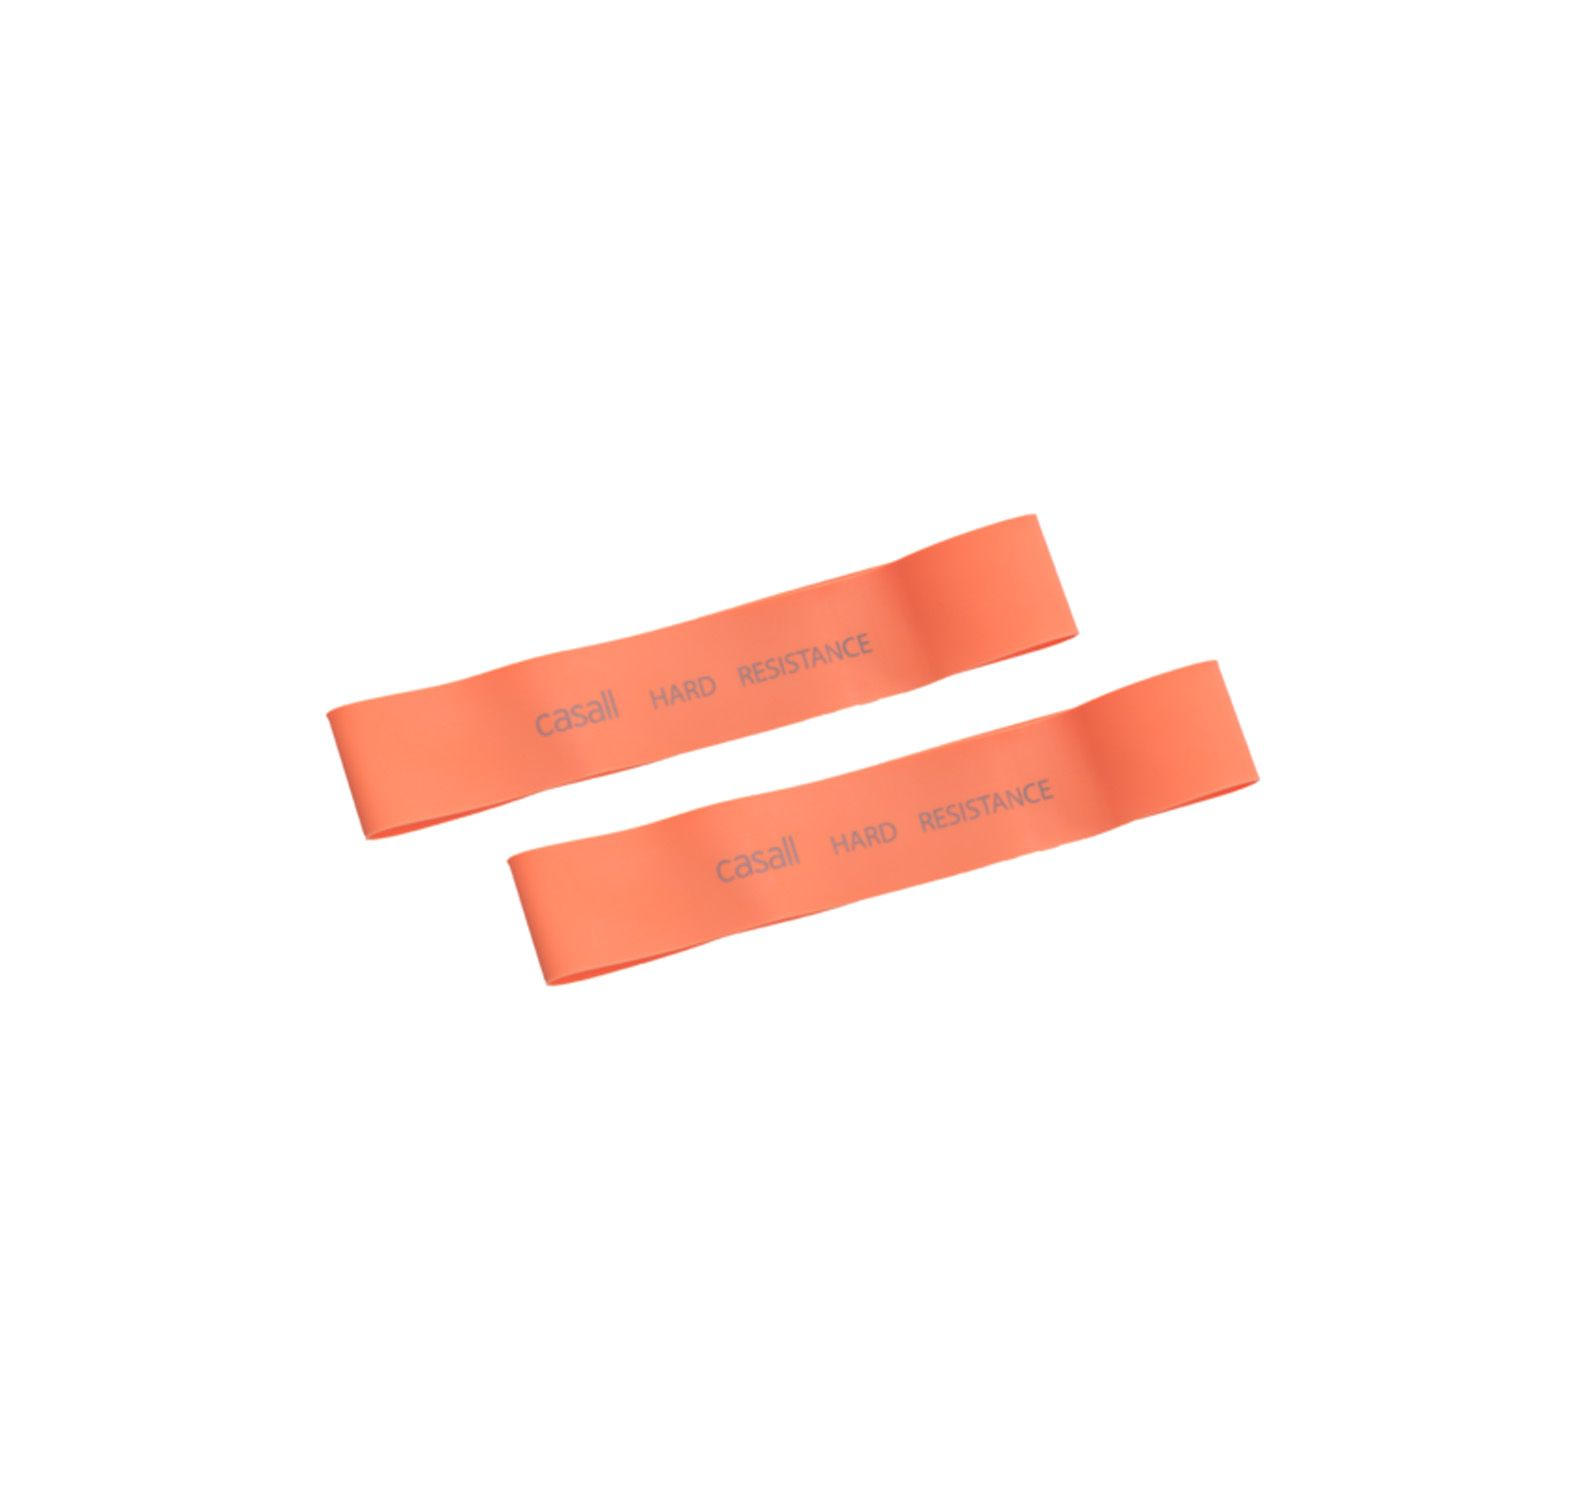 rubber band hard 2pcs, orange, onesize,  casall